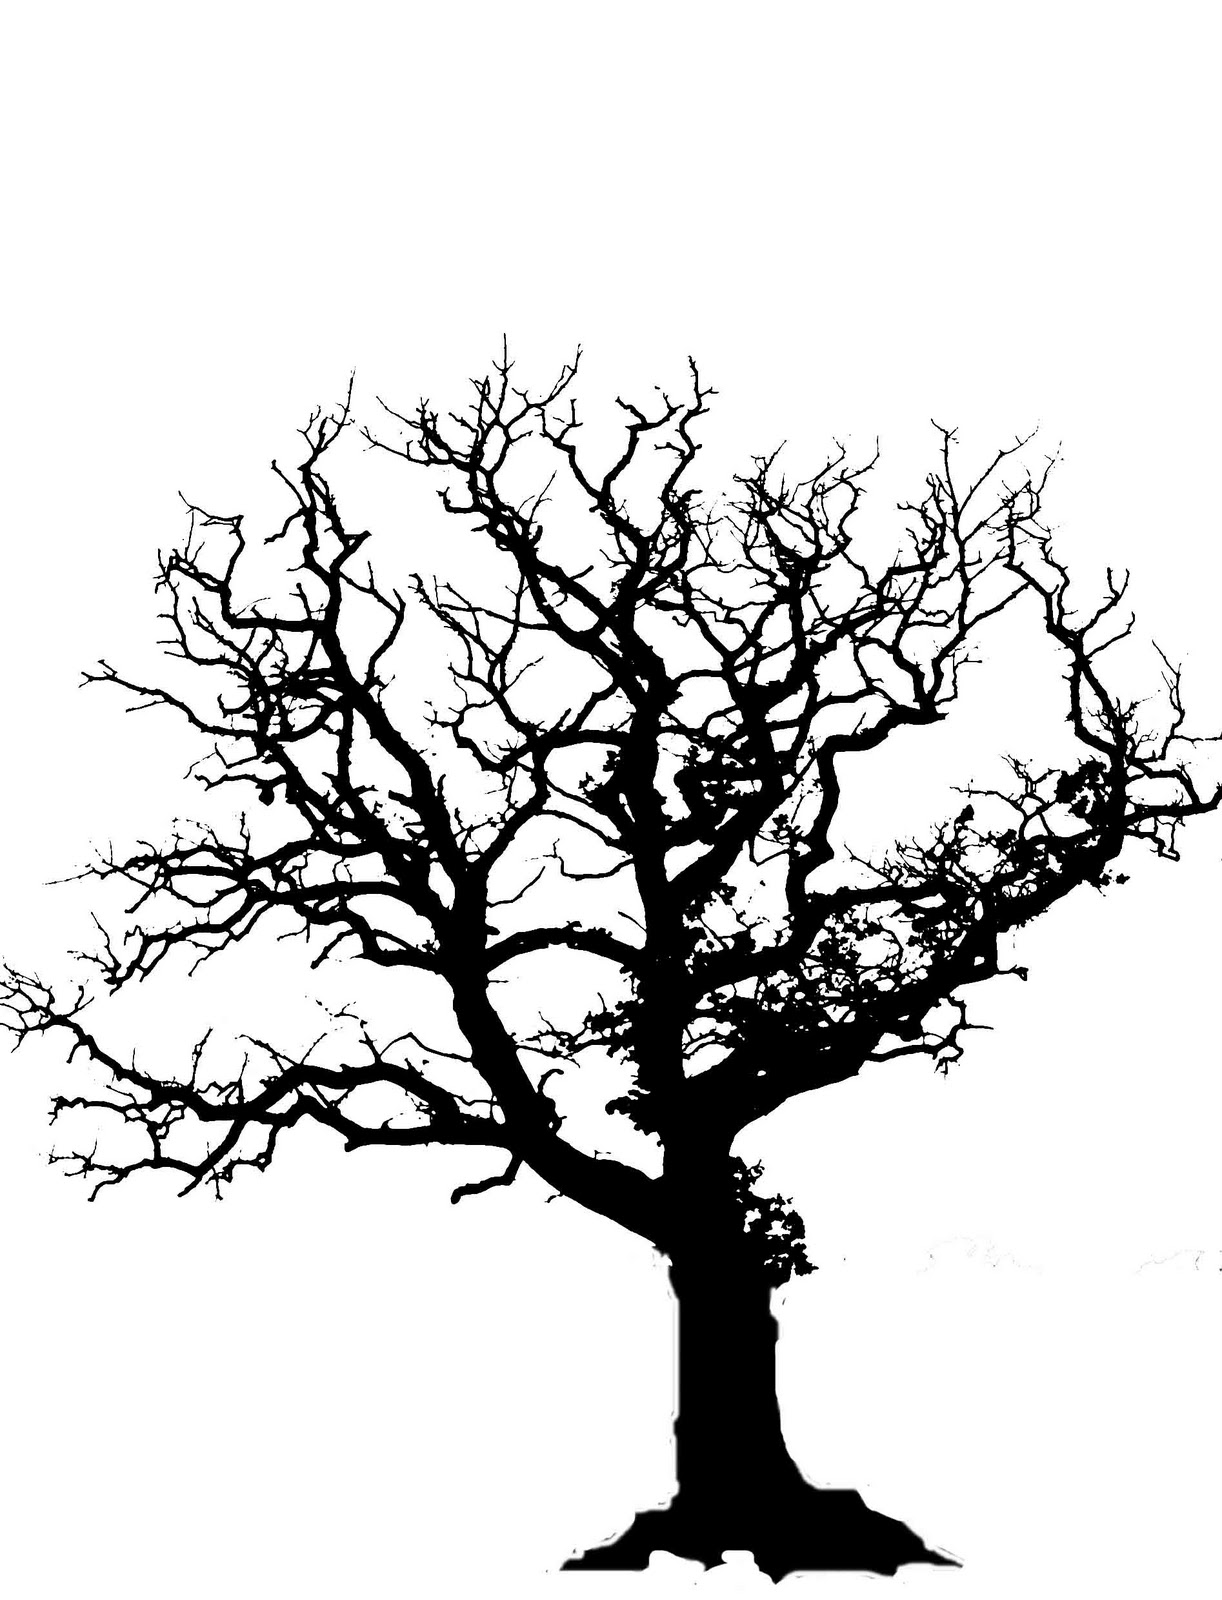 20 Tree Silouette Clip Art Animated Ideas And Designs